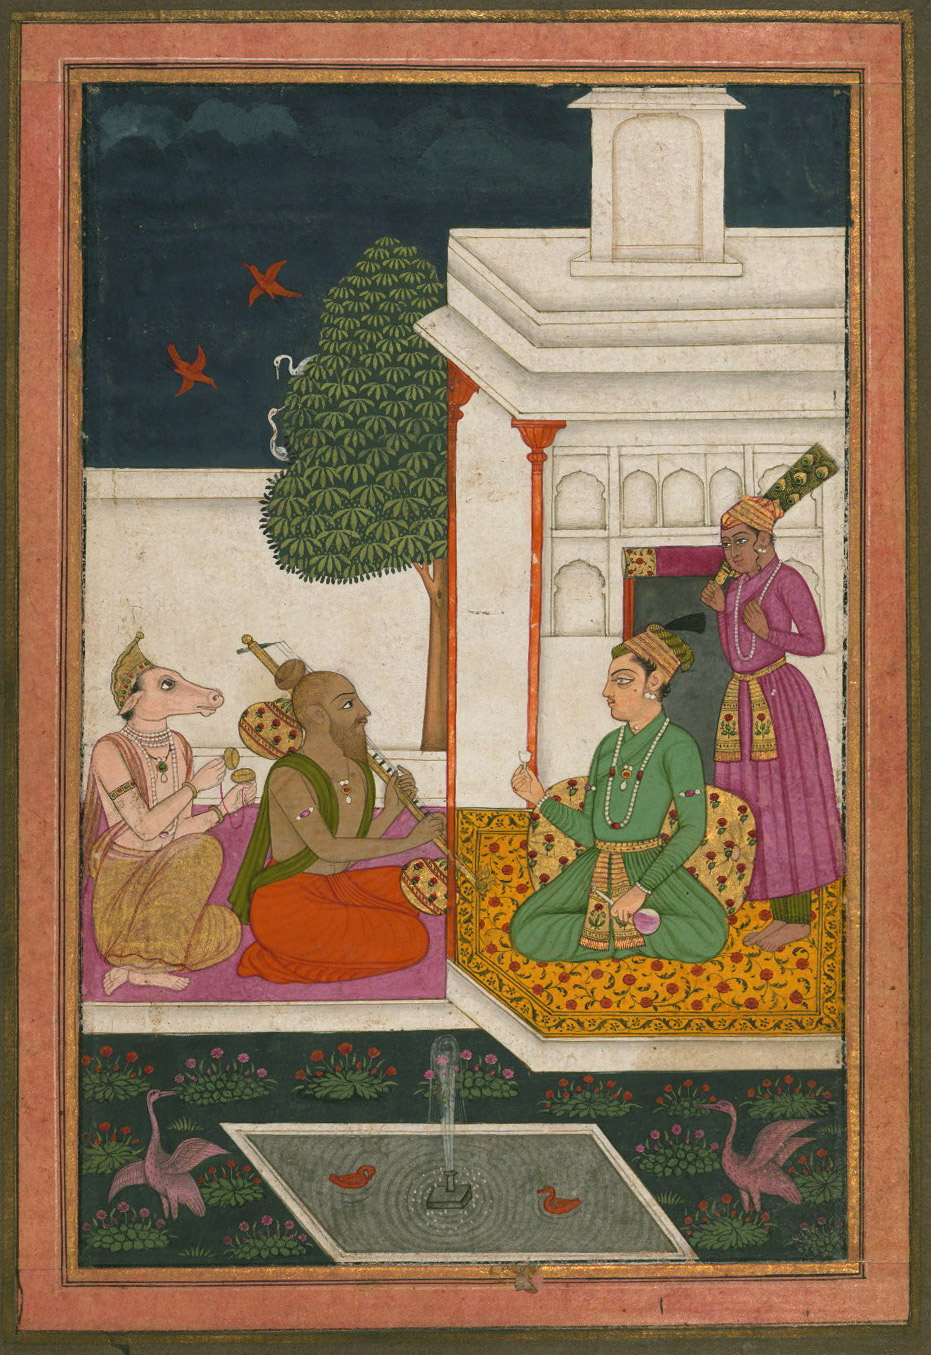 Sri raga - Miniature Painting, Ragamala series, 19th Century